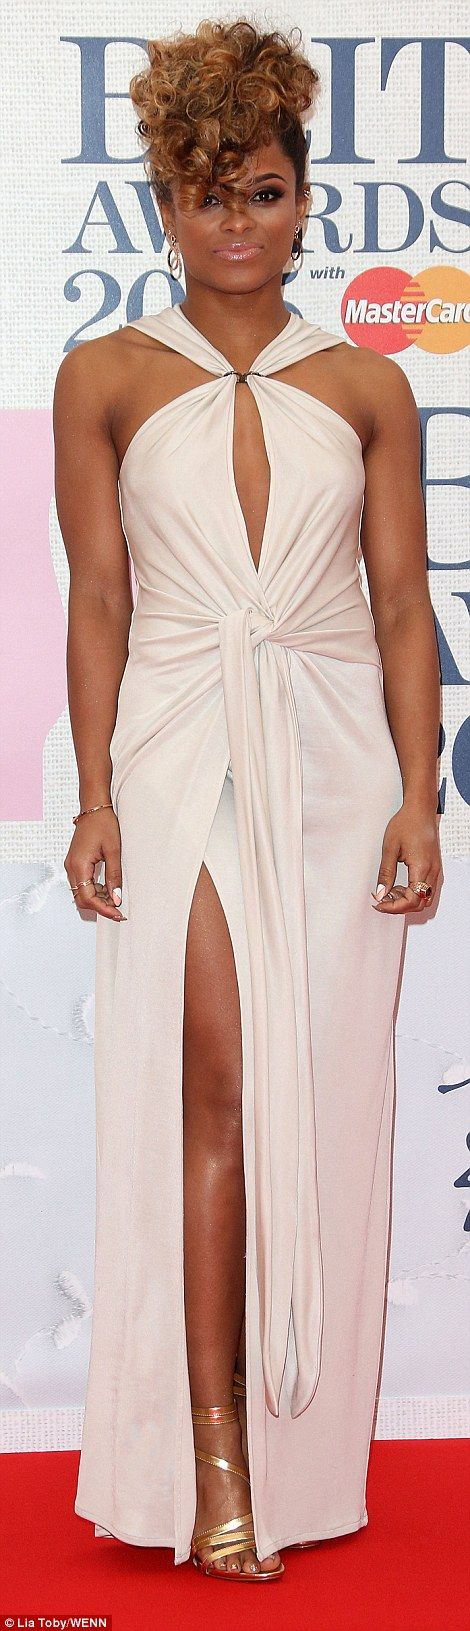 Fleur East's dress was elegant, but her OTT curly Elvis do let her look down as the singer piled her hair on top of her head